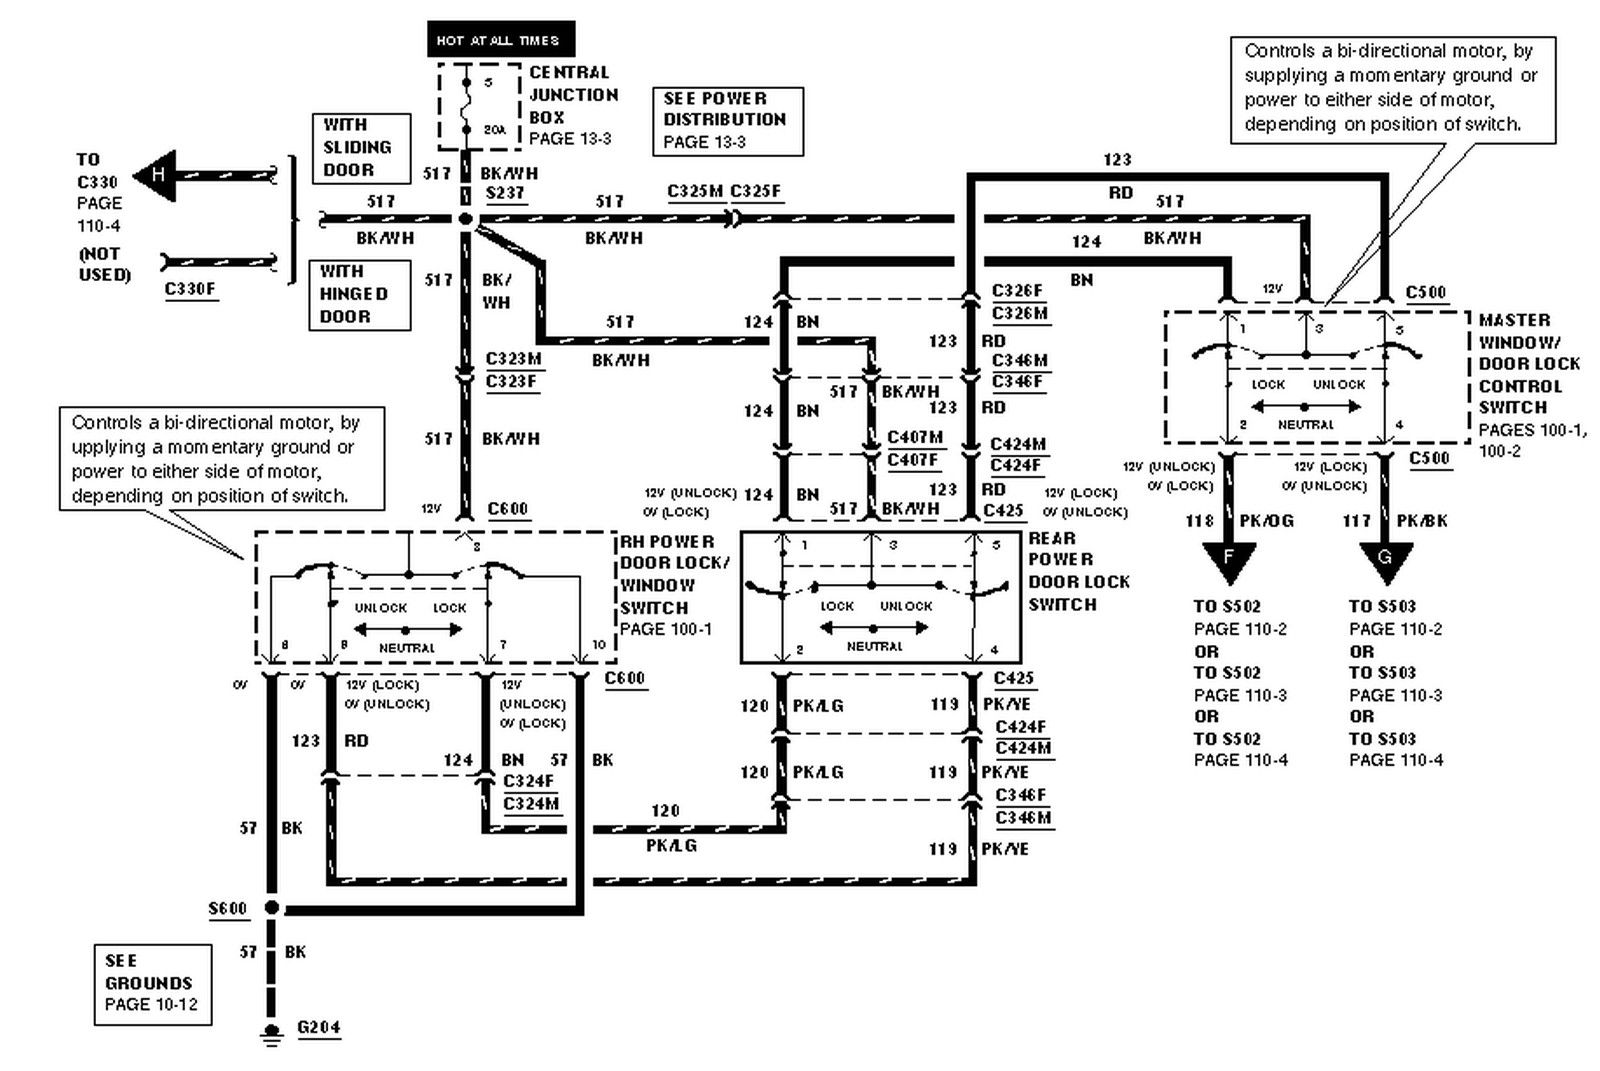 key west wiring diagram key west wiring 2003 key west 2020 wiring diagram keyless entry on 1992 e350 ford truck enthusiasts forums